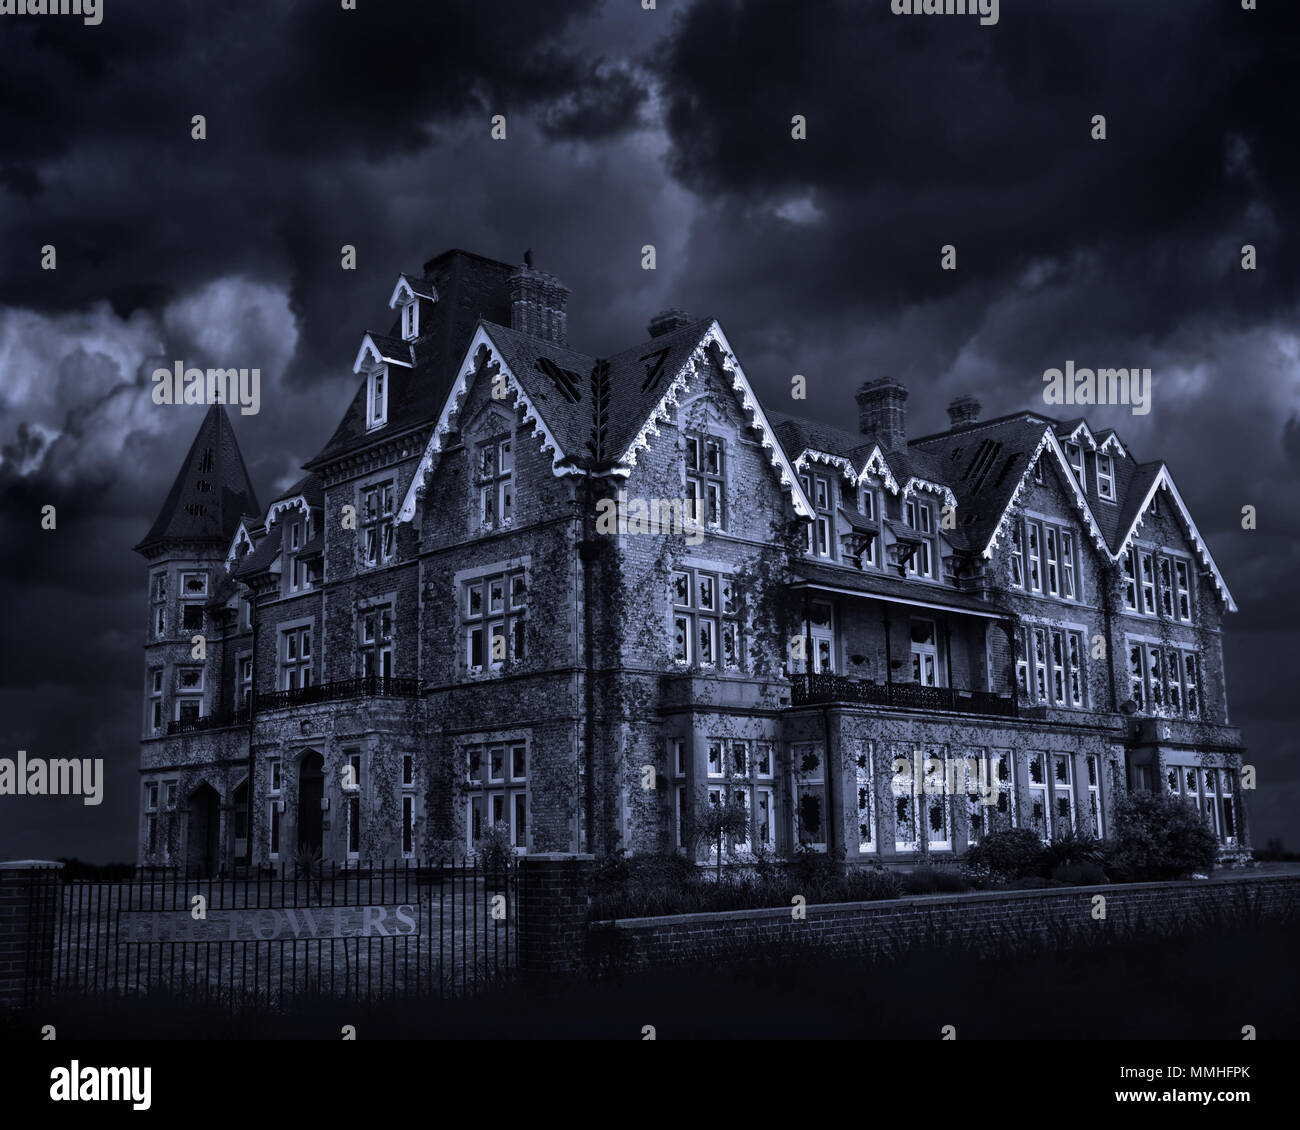 This image is a photo manipulation of a block of apartments that is in good repair and made to look as though it's derelict, run down and haunted. - Stock Image